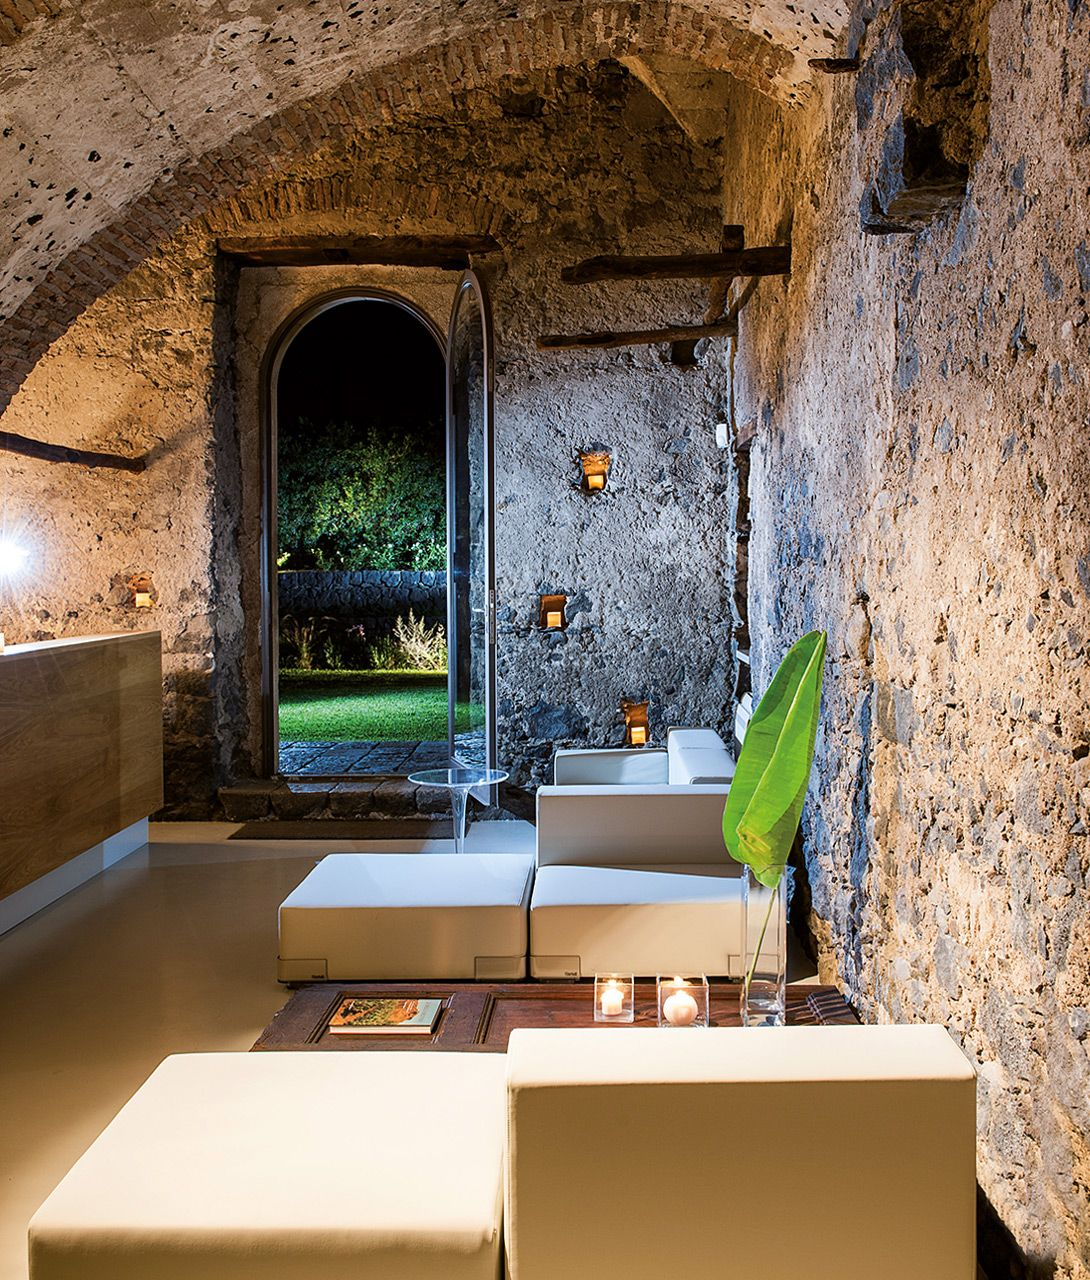 Zash Country Boutique Hotel Interior in Archi Riposto